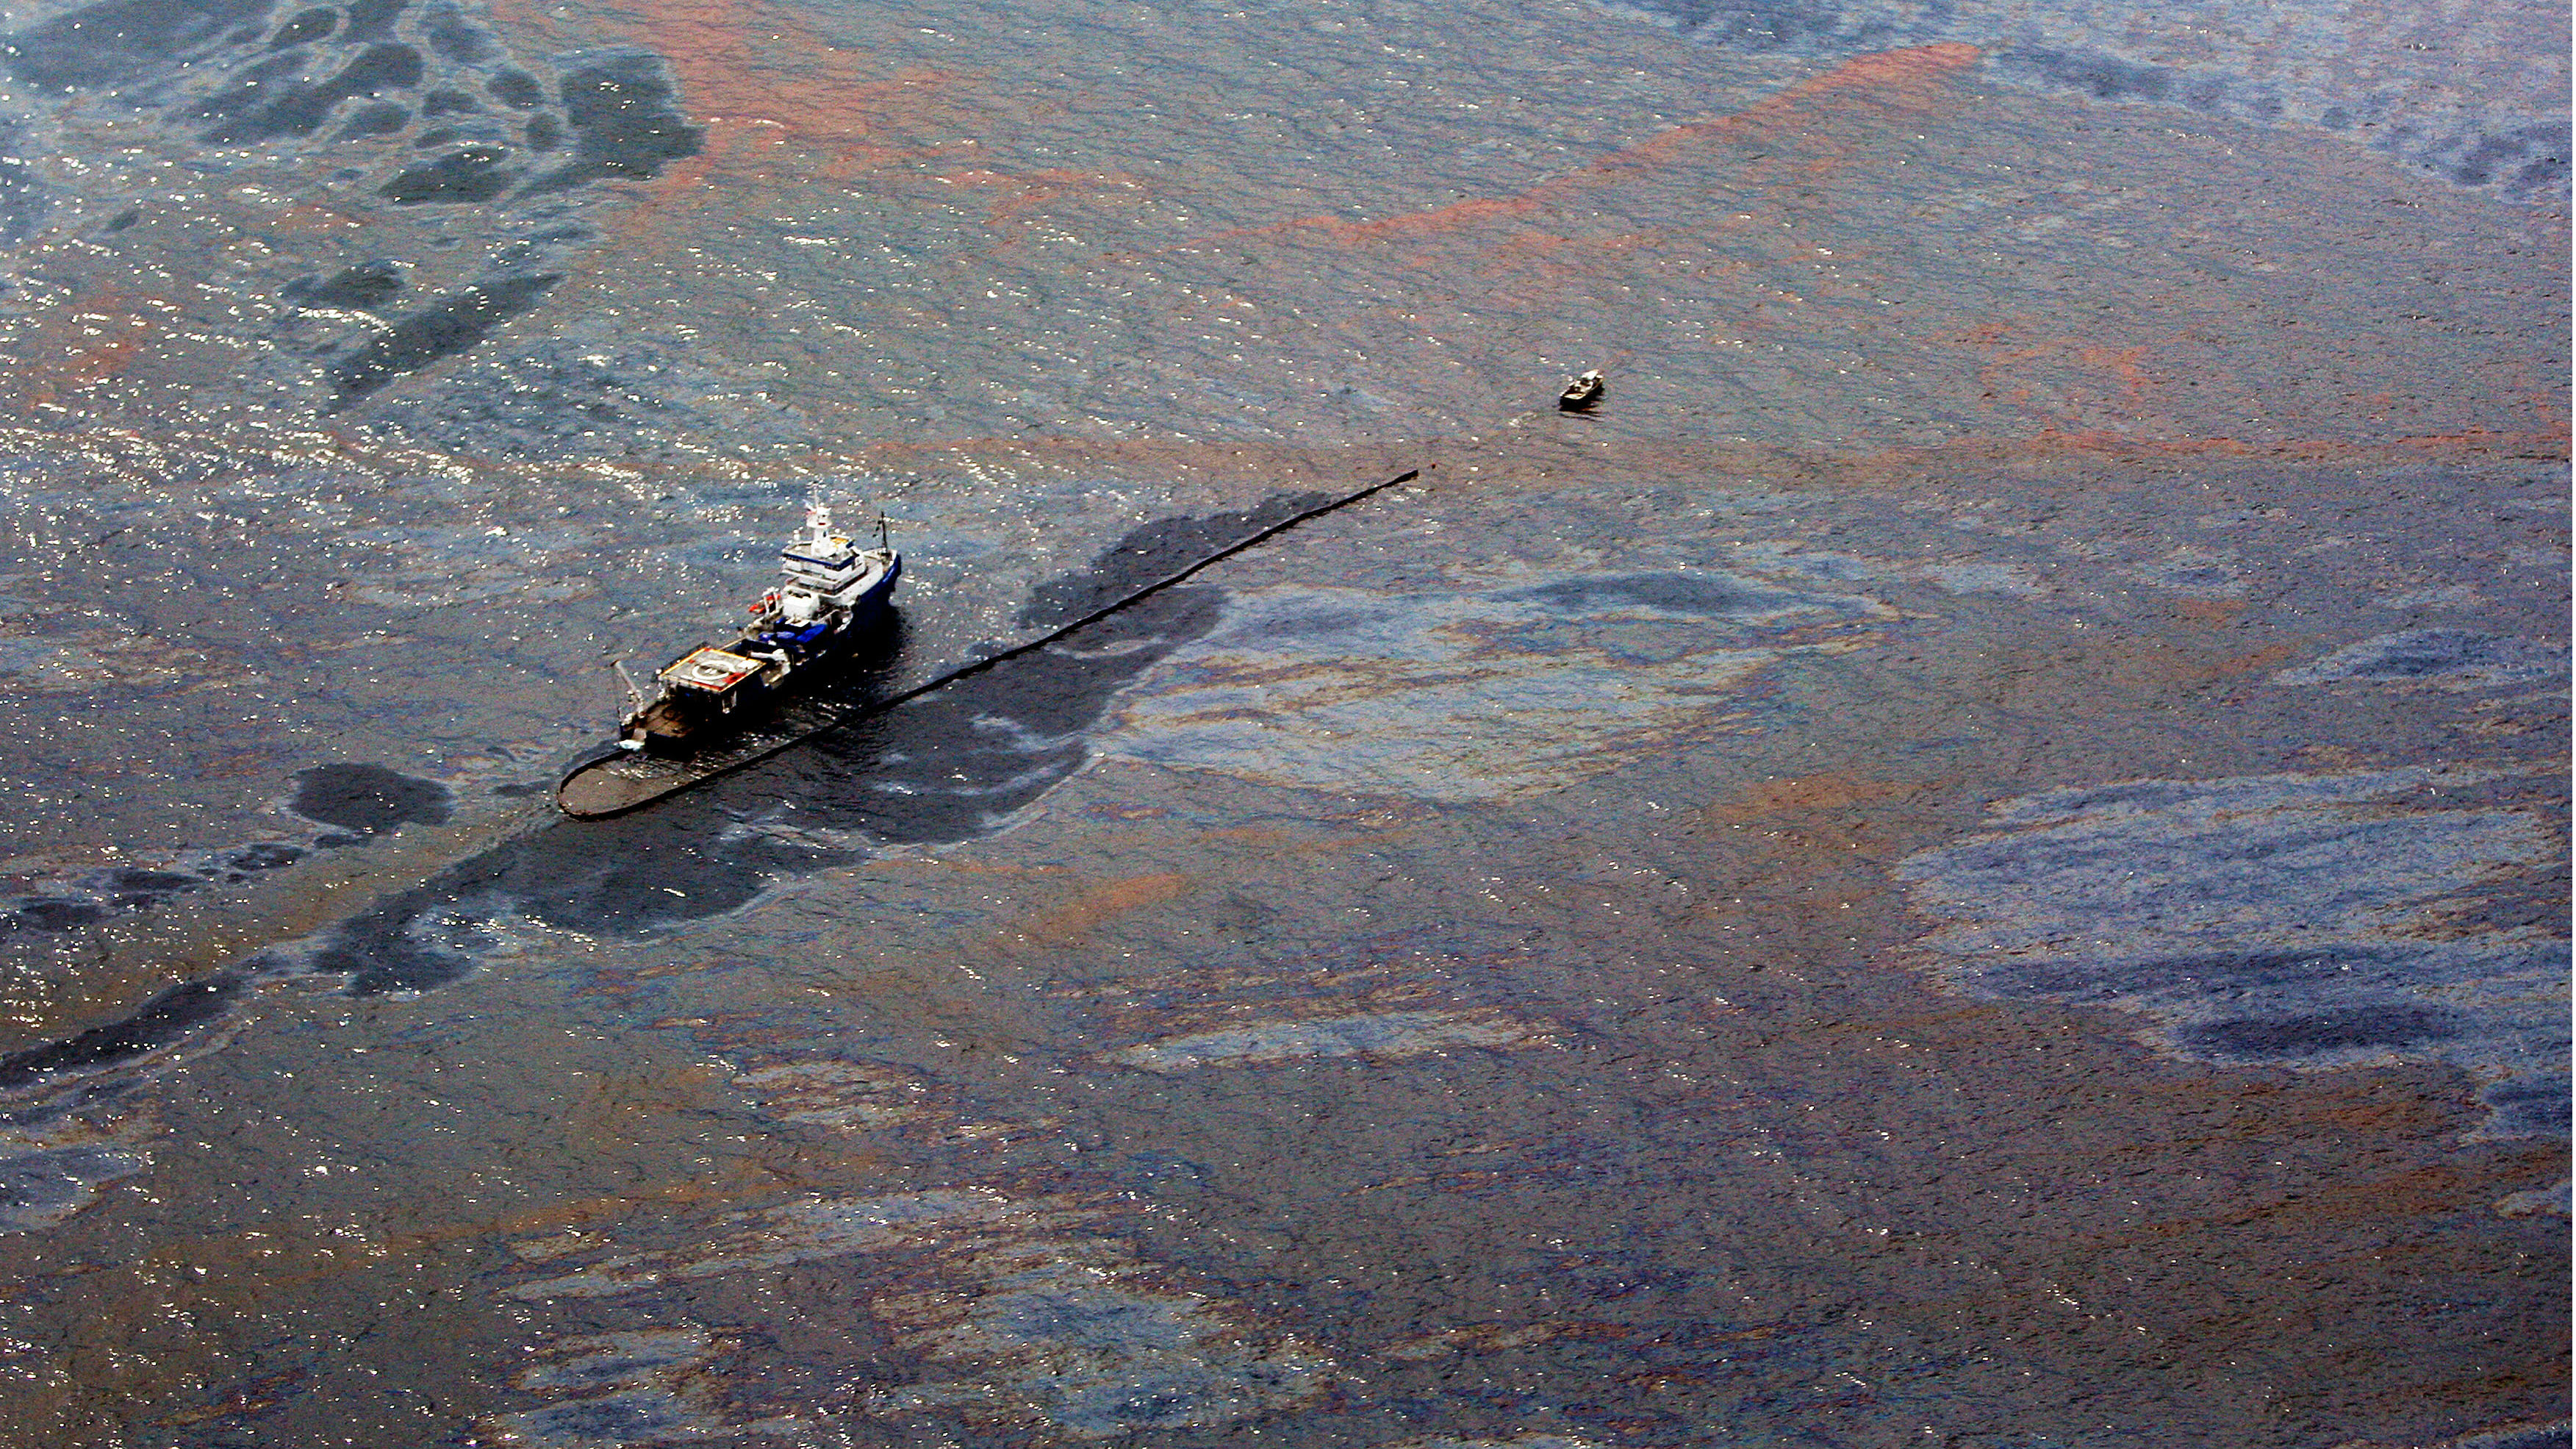 Oil floats on the surface of the Gulf of Mexico around a work boat at the site of the Deepwater Horizon oil spill in the Gulf of Mexico June 2, 2010. As the desperate effort to contain the gusher proceeded, the slick stretched farther. Tar balls and other oil debris from the giant, fragmented slick reached Alabama's Dauphin Island, parts of Mississippi and were less than 16 km (10 miles) from Florida's northwest Panhandle coast.